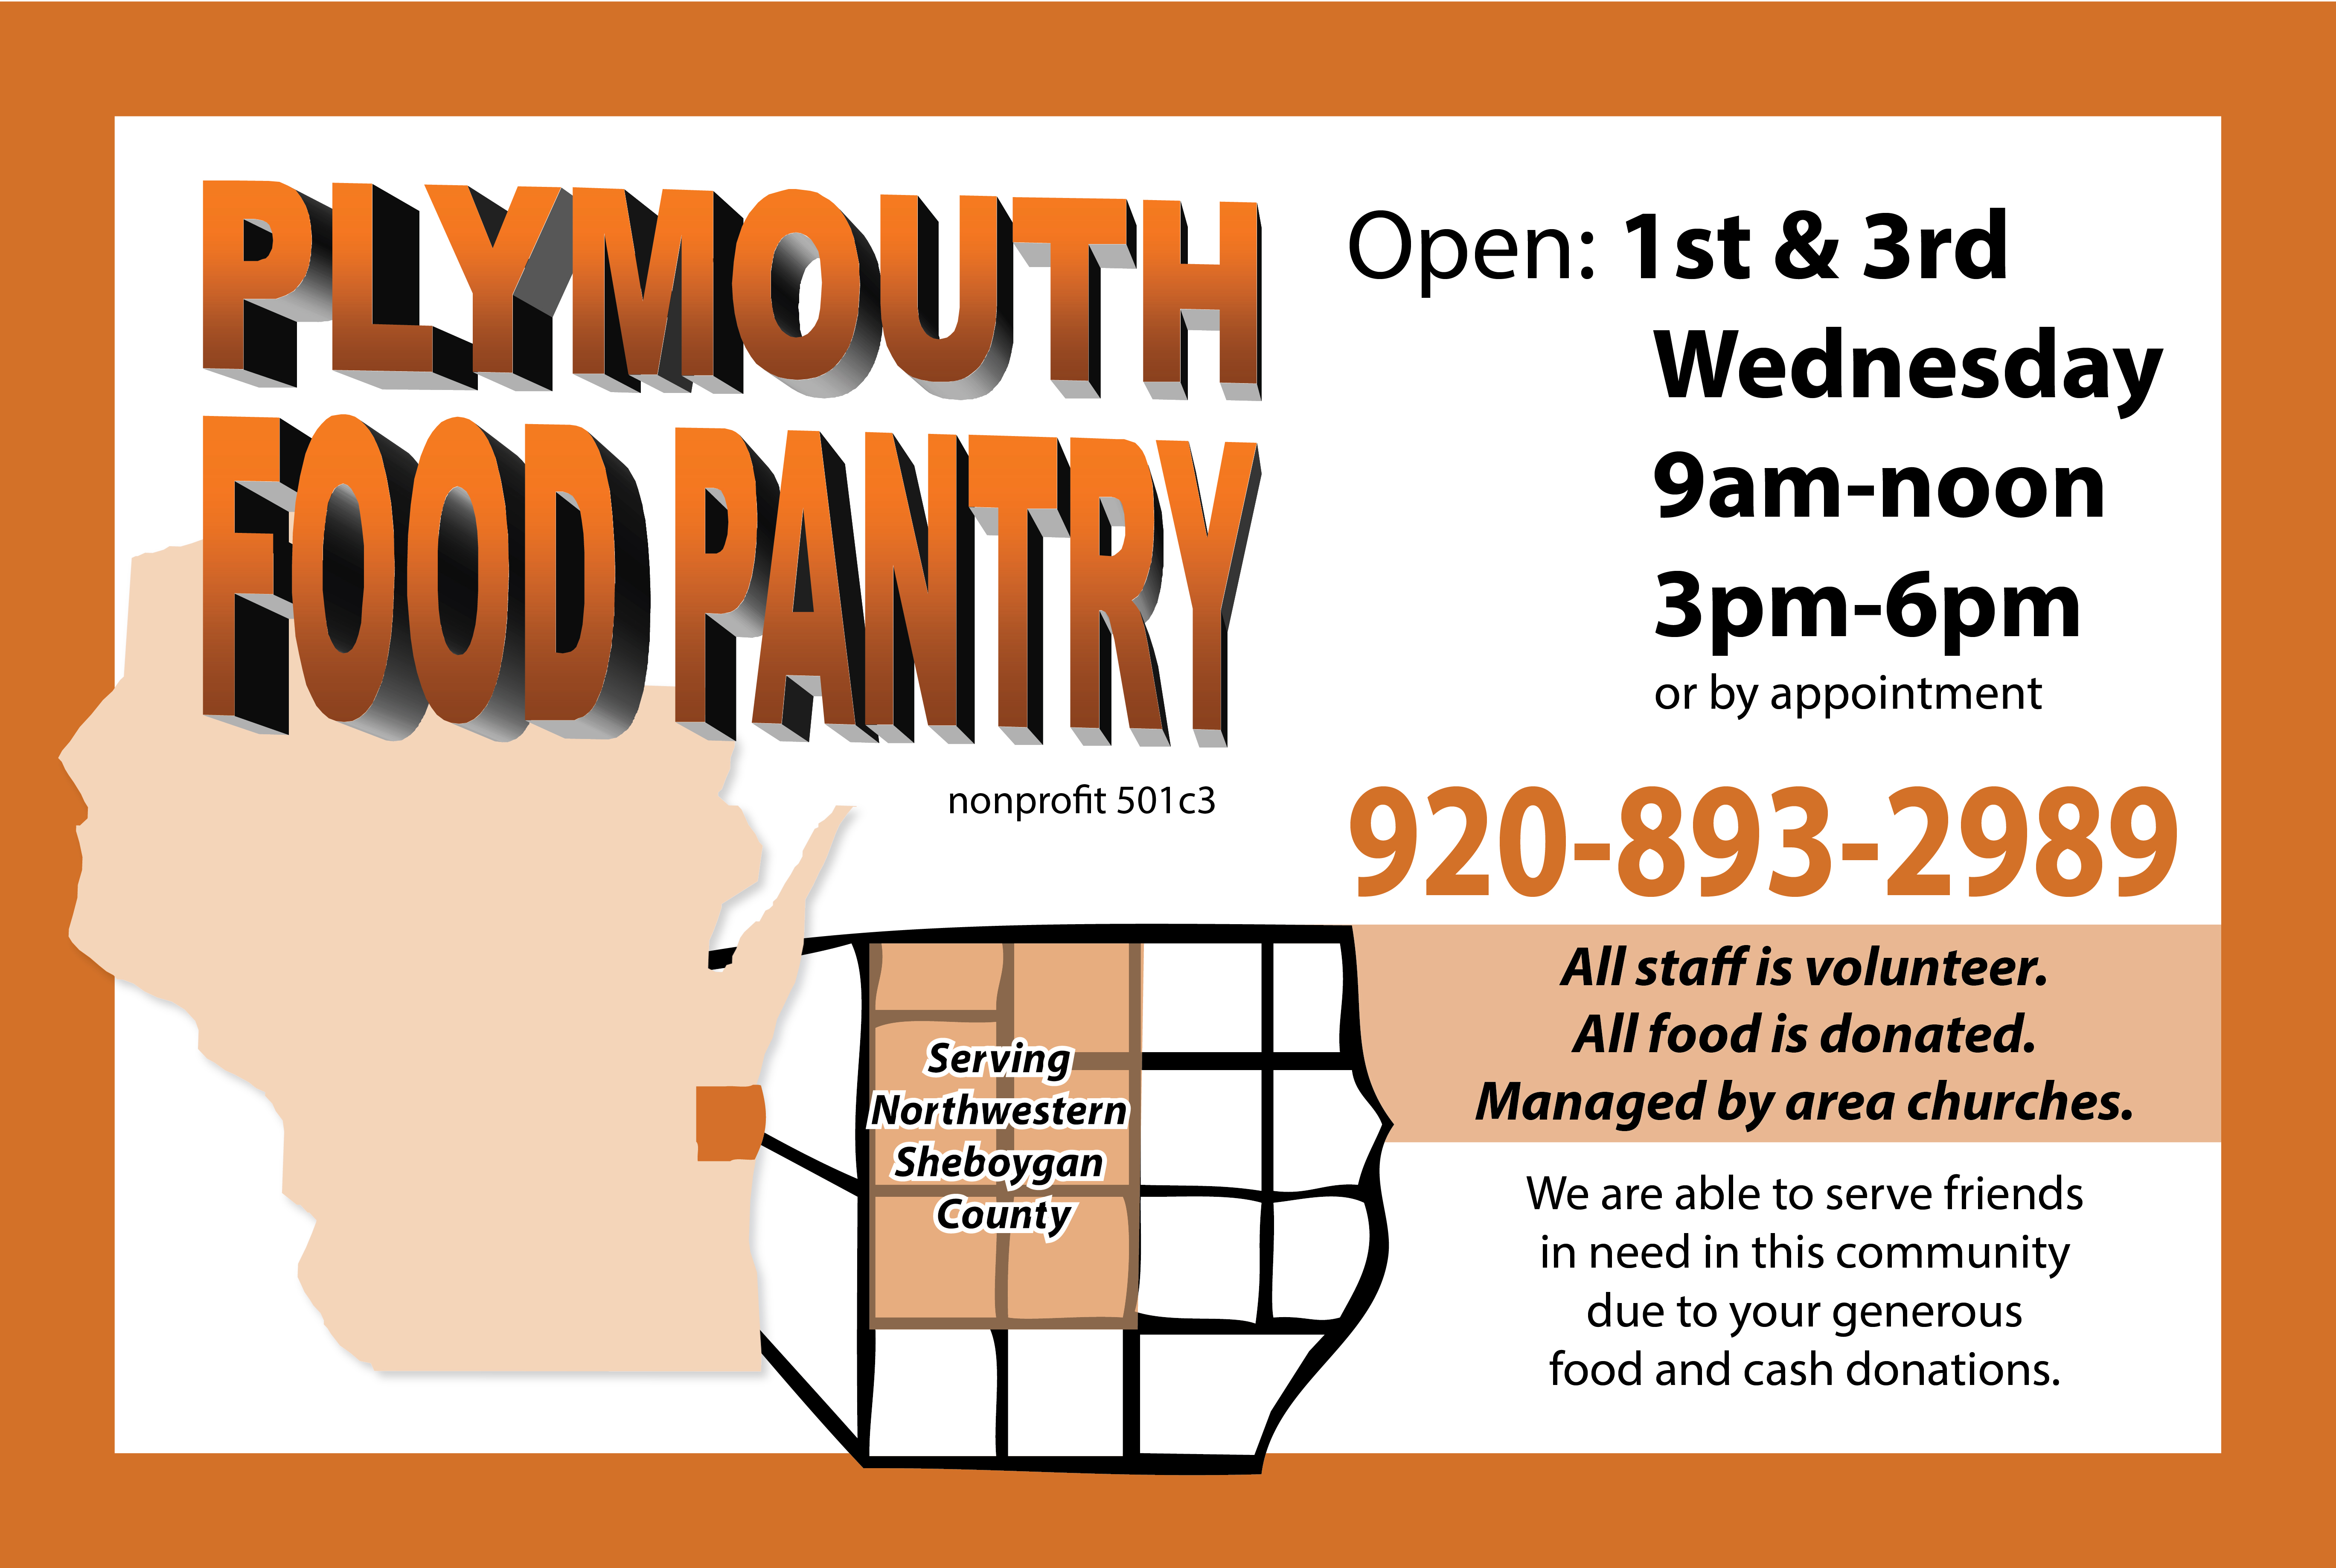 Food Pantry Plymouth Wisconsin